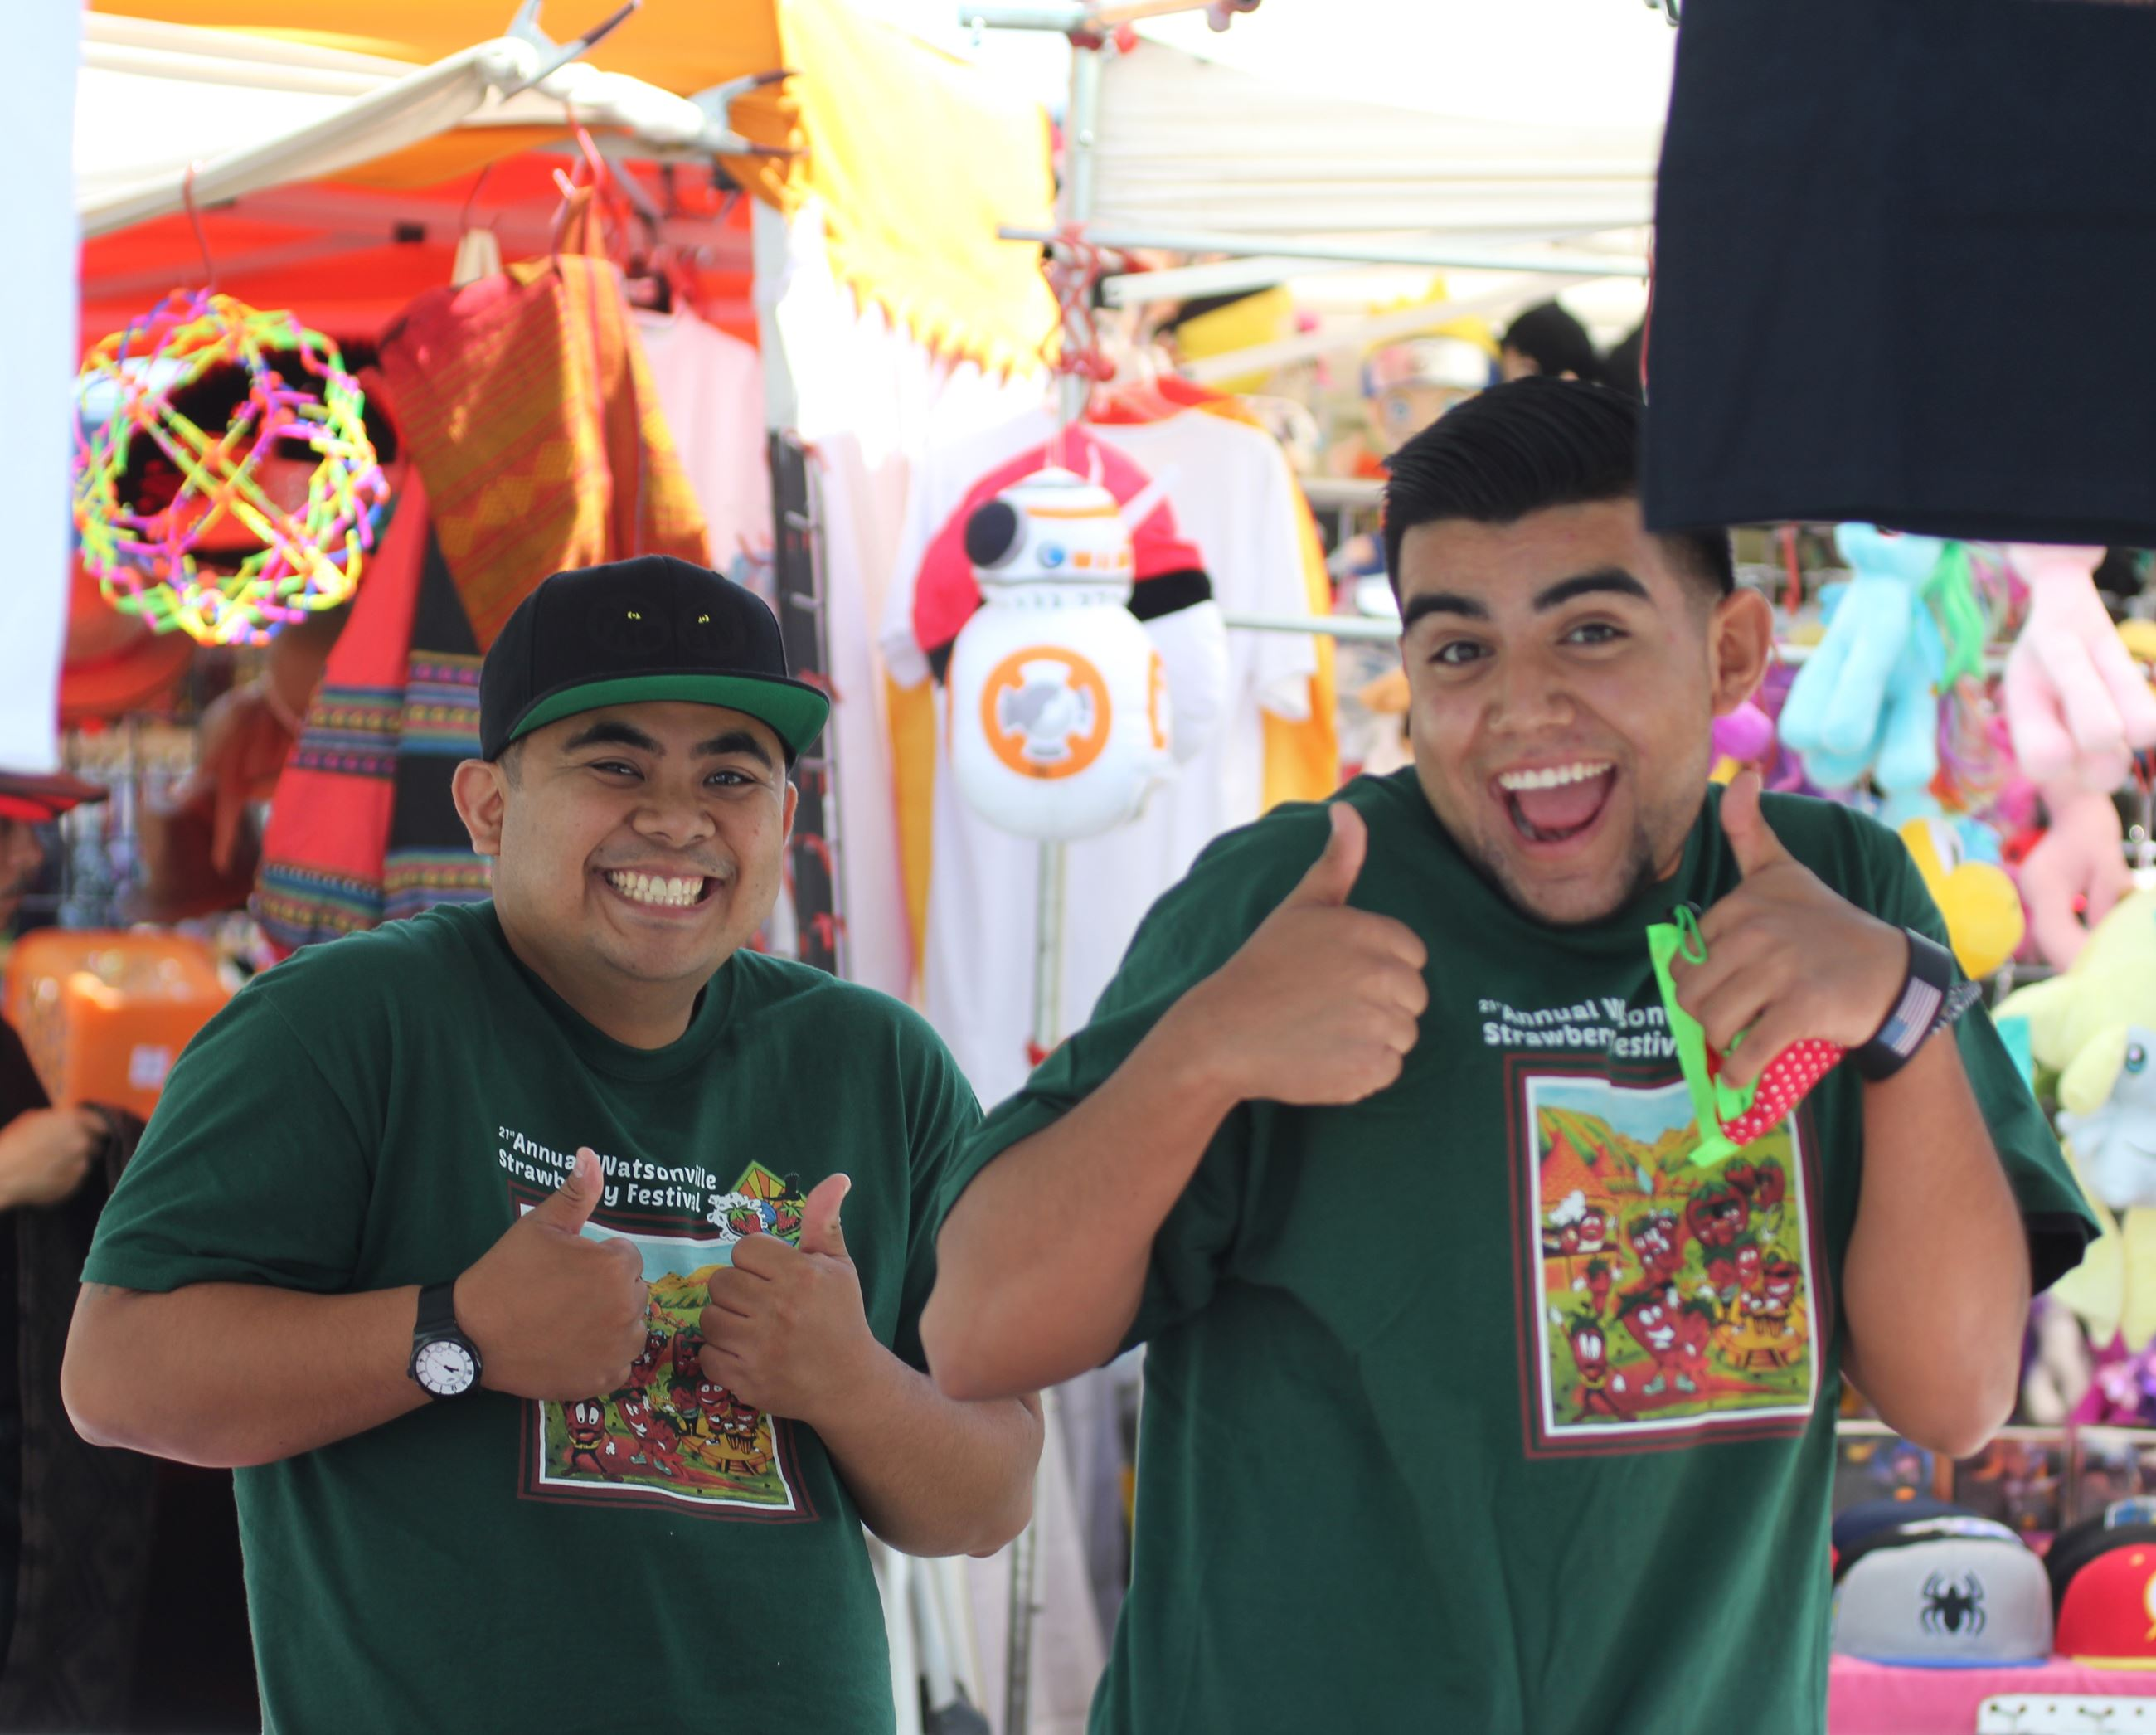 Strawberry Festival participants giving a thumbs up